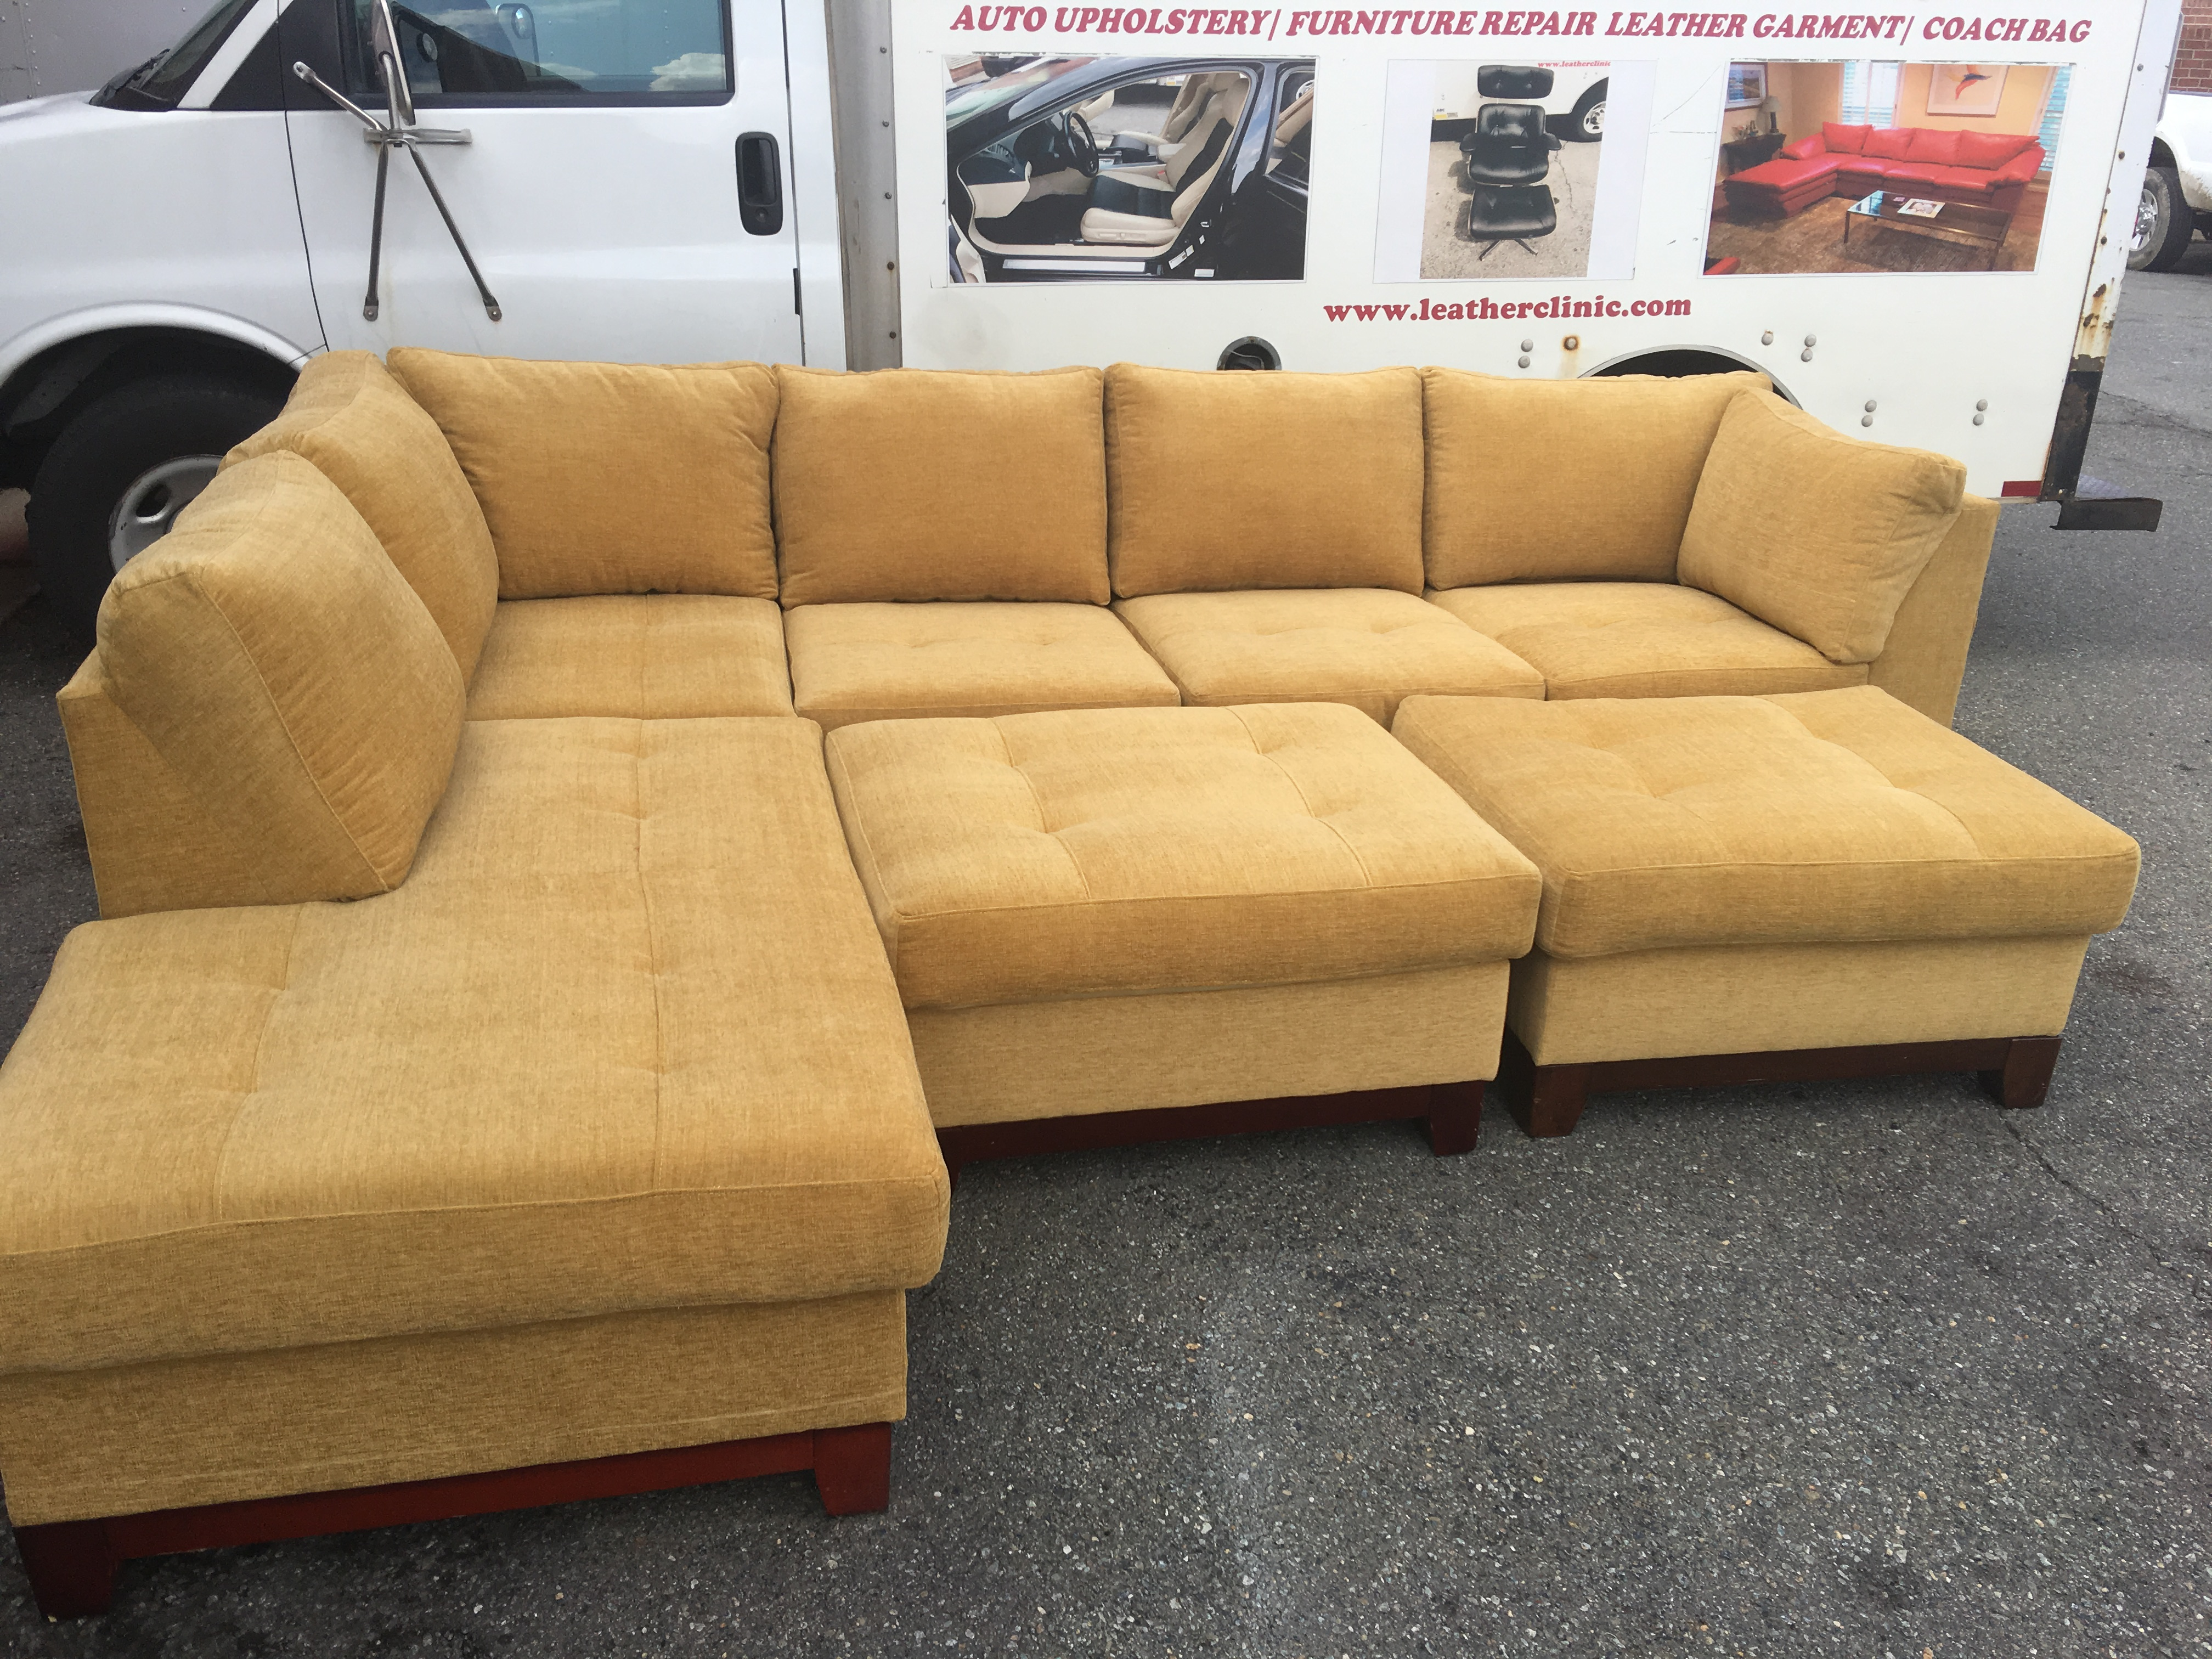 Ultra suede sectional finish